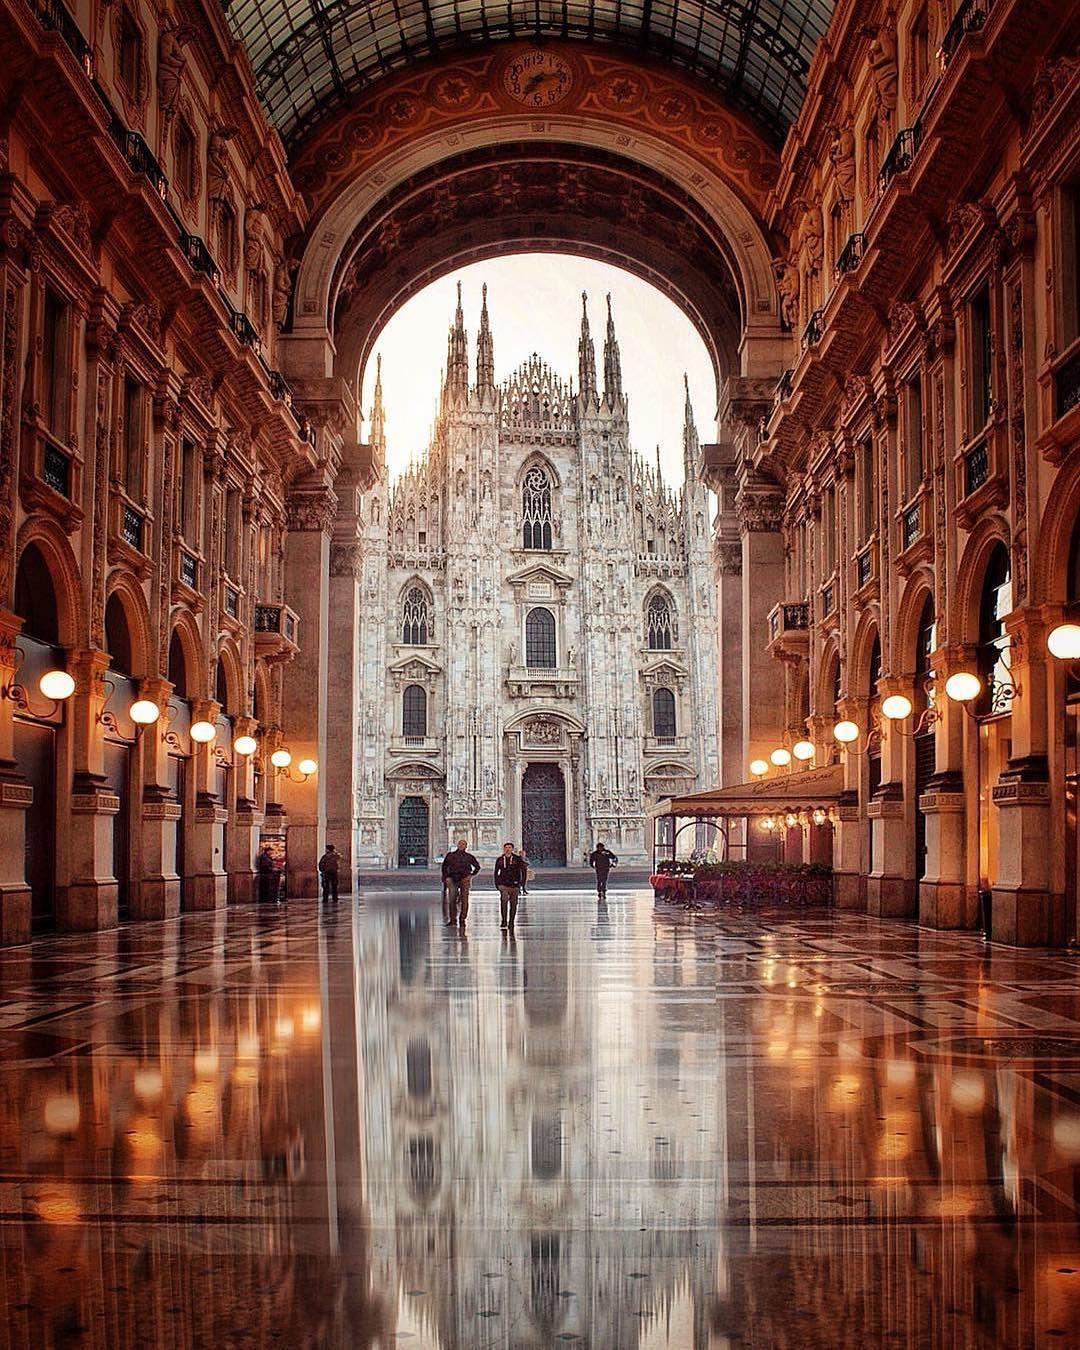 Pin By Karen Bonds On Vacation Italy Travel Italy Milan